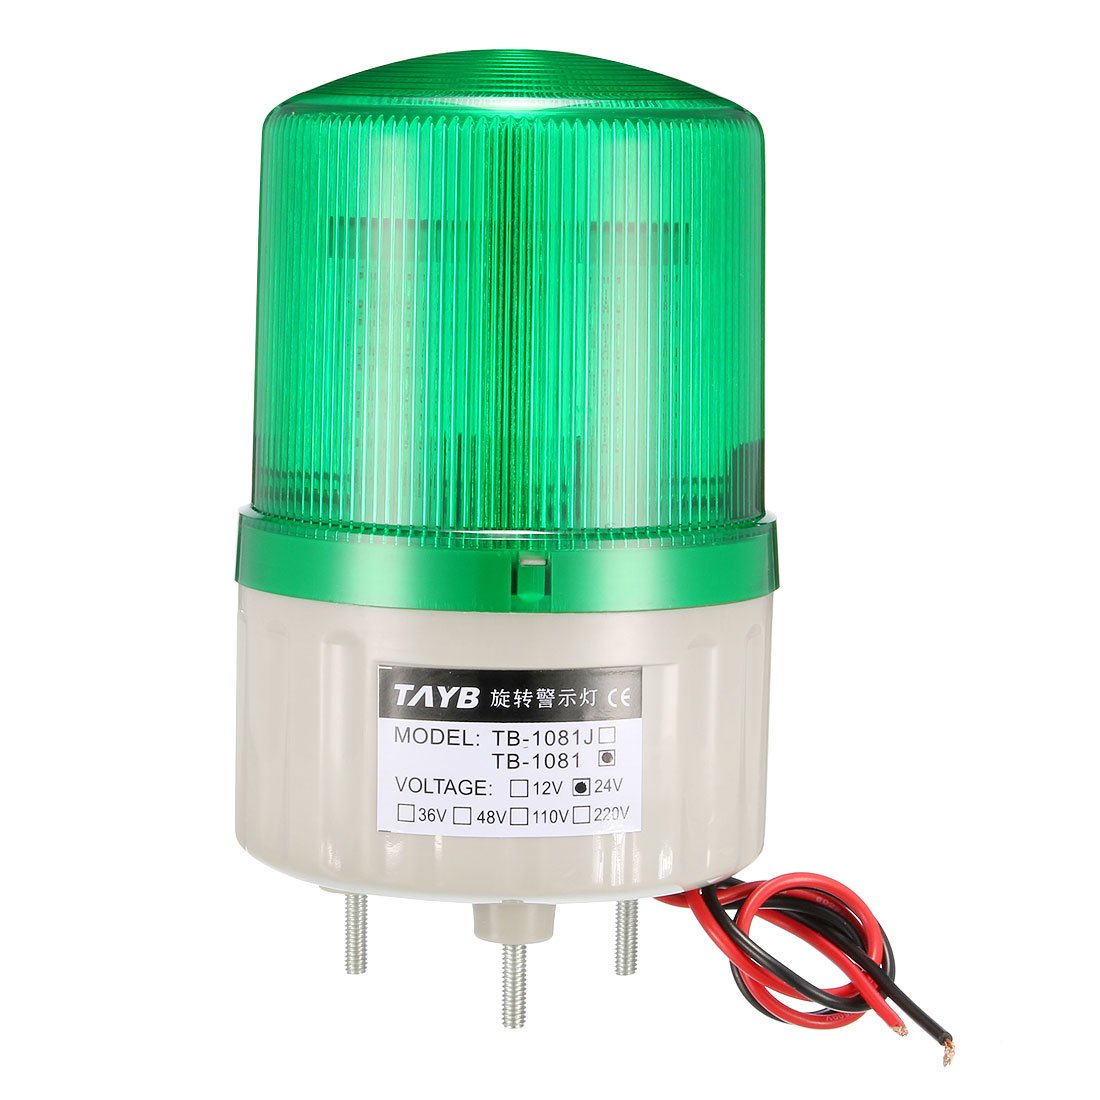 uxcell LED Warning Light Bright Industrial Signal Alarm Lamp Indicator Light DC 24V 1W Green TB-1081